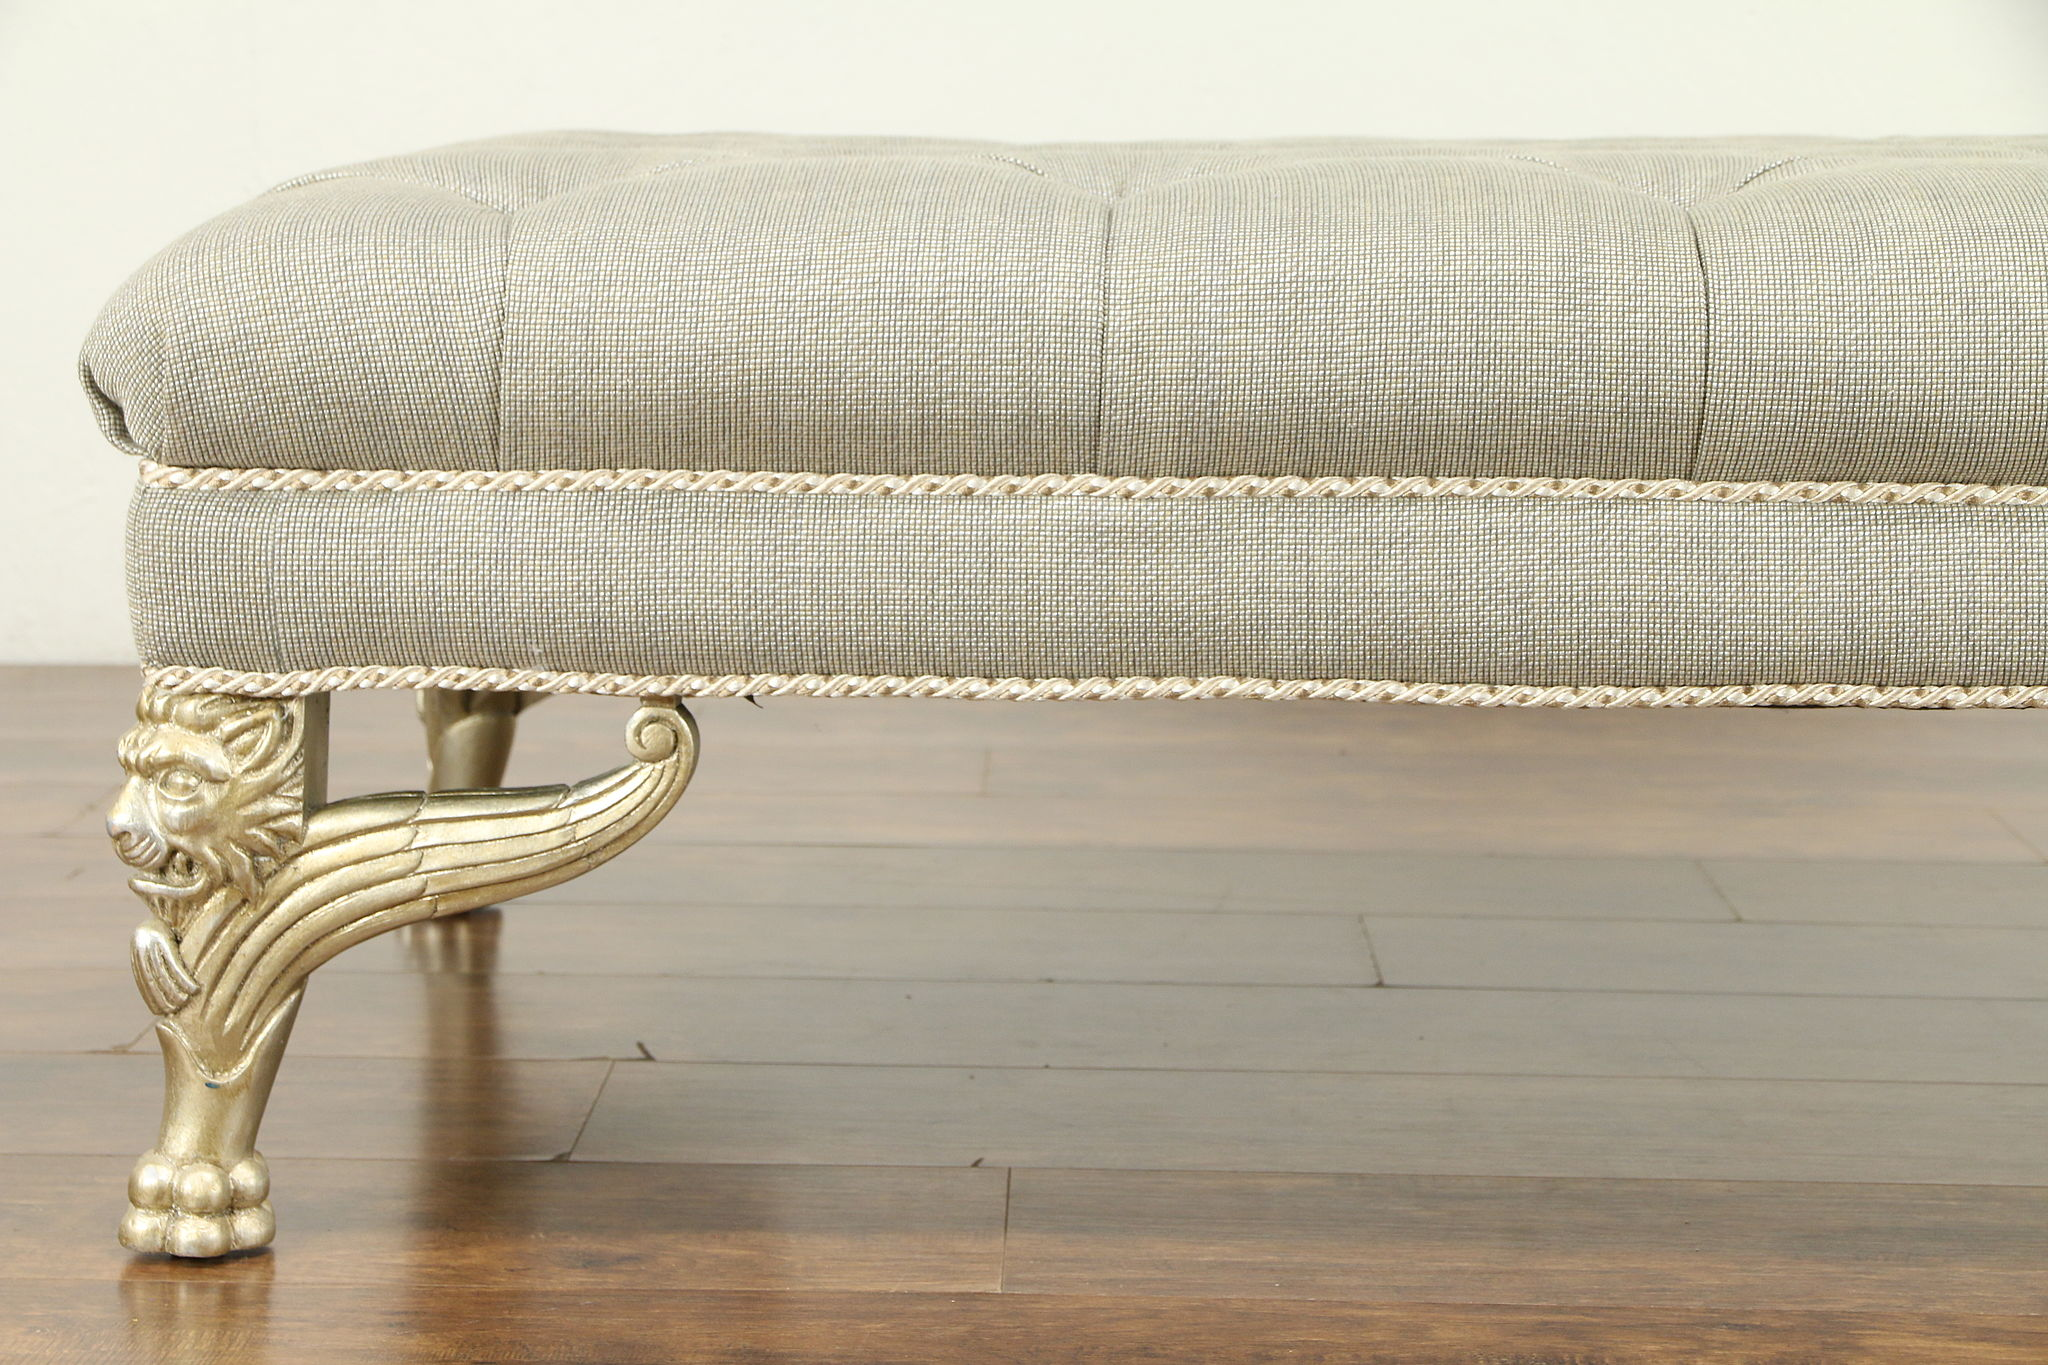 Astonishing Bench Stool Or Hassock Carved Silver Gilt Lion Legs Henredon 30964 Ocoug Best Dining Table And Chair Ideas Images Ocougorg